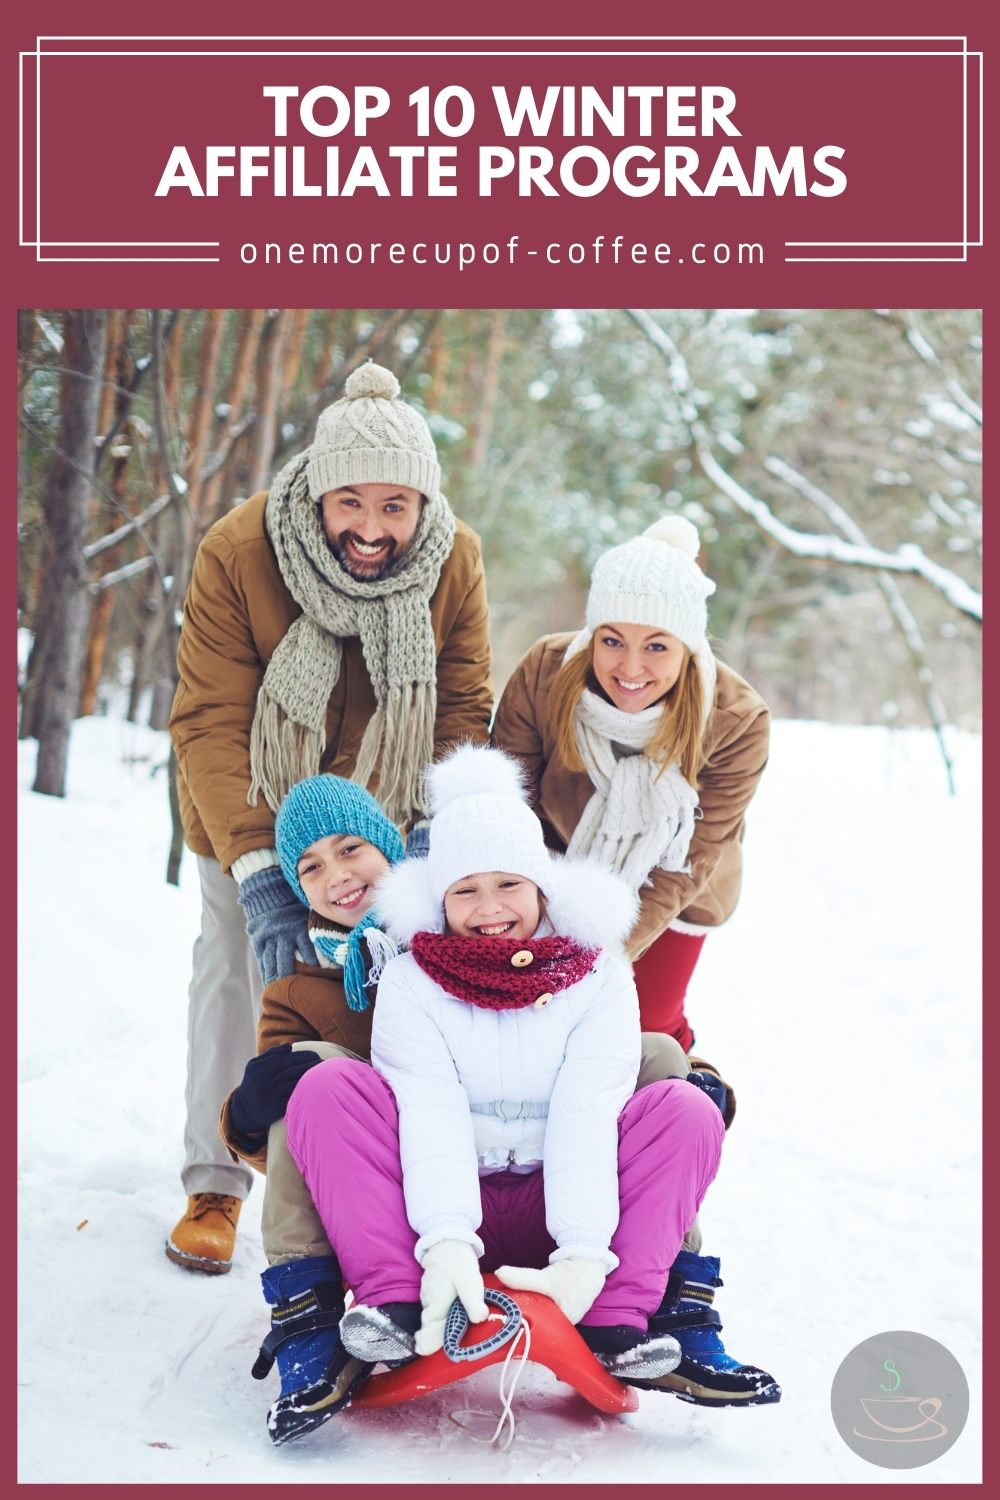 """Family of four, a couple and their young daughter and son, playing outside in the snow, with text overlay """"Top 10 Winter Affiliate Programs"""""""